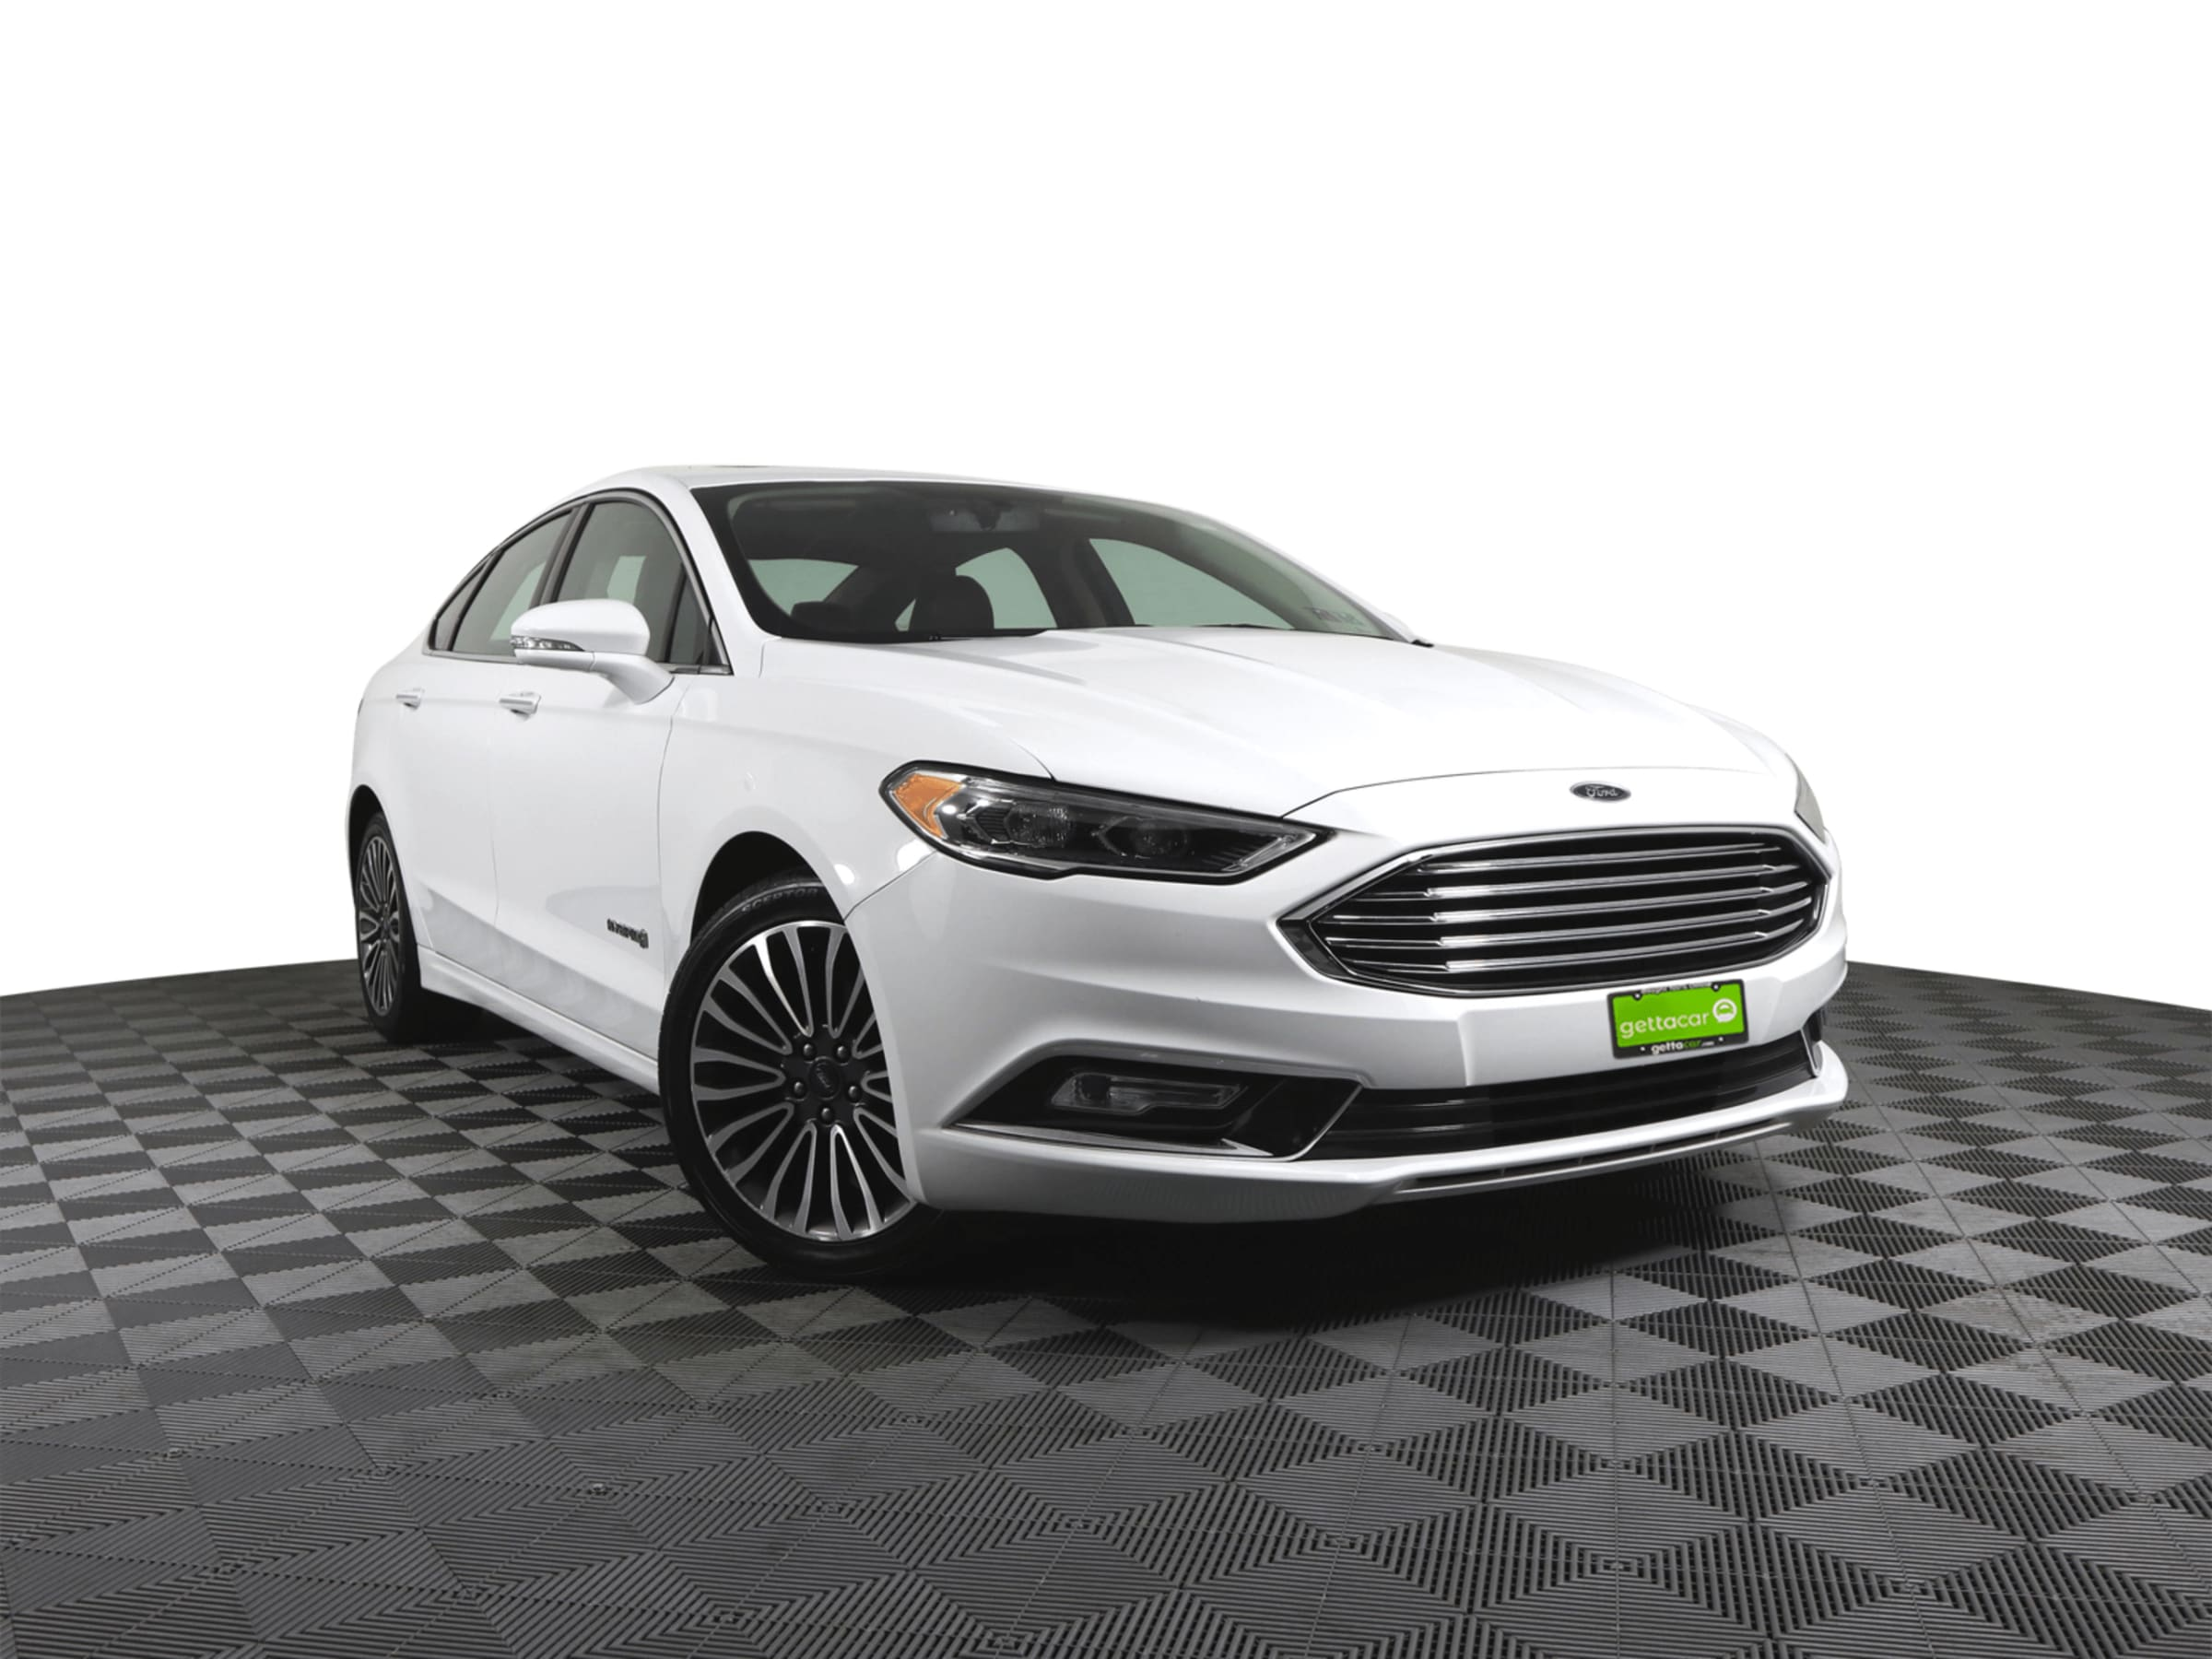 2018 Ford Fusion Hybrid null